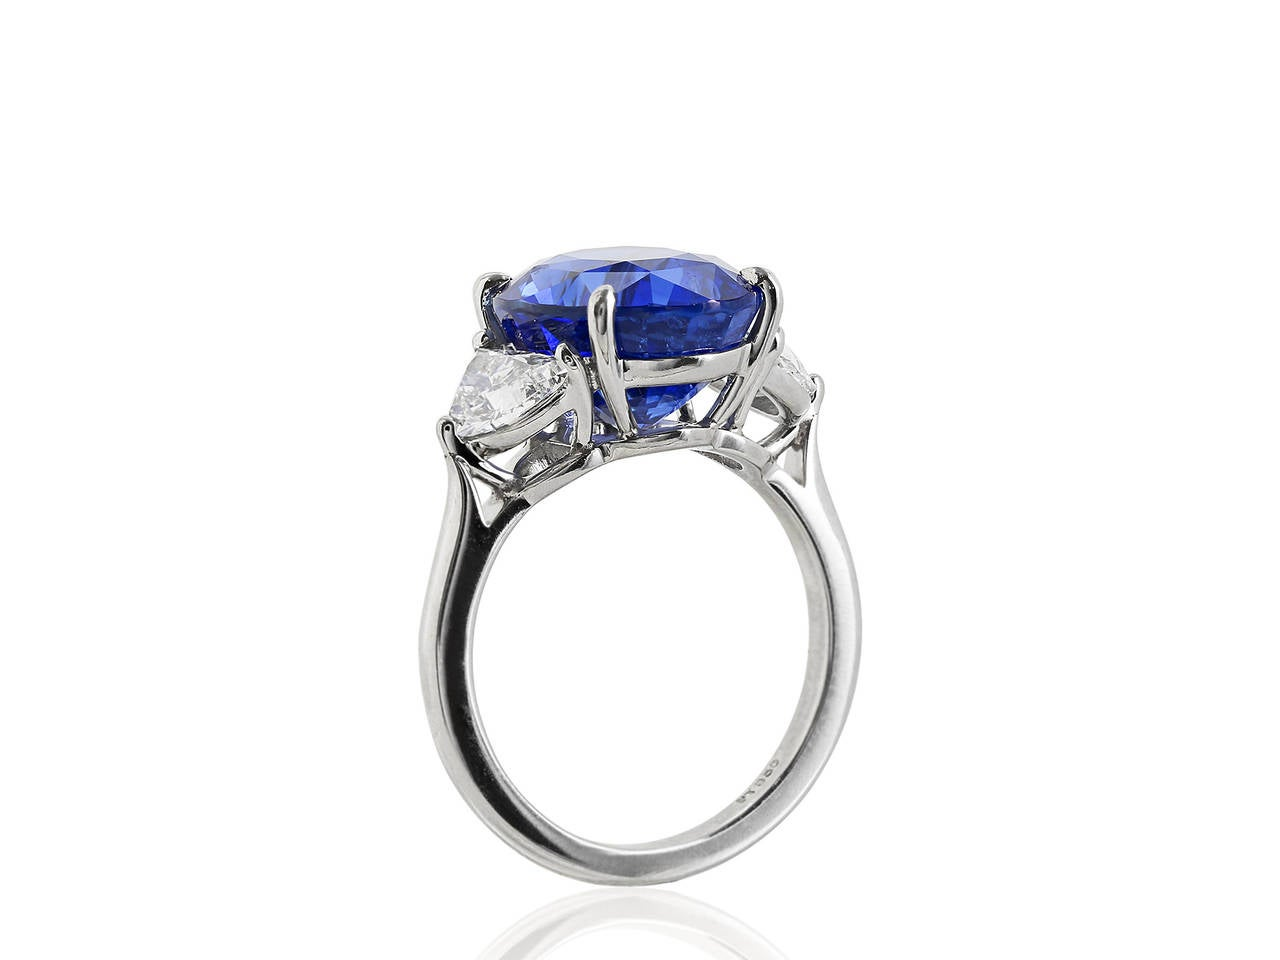 Platinum custom made 3 stone ring consisting of 1 oval shaped blue sapphire weighing 10.08 carats, with GIA certificate #1172210095 stating Royal Blue no heat, the center stone is flanked with 2 half moon shaped diamonds having a total weight of